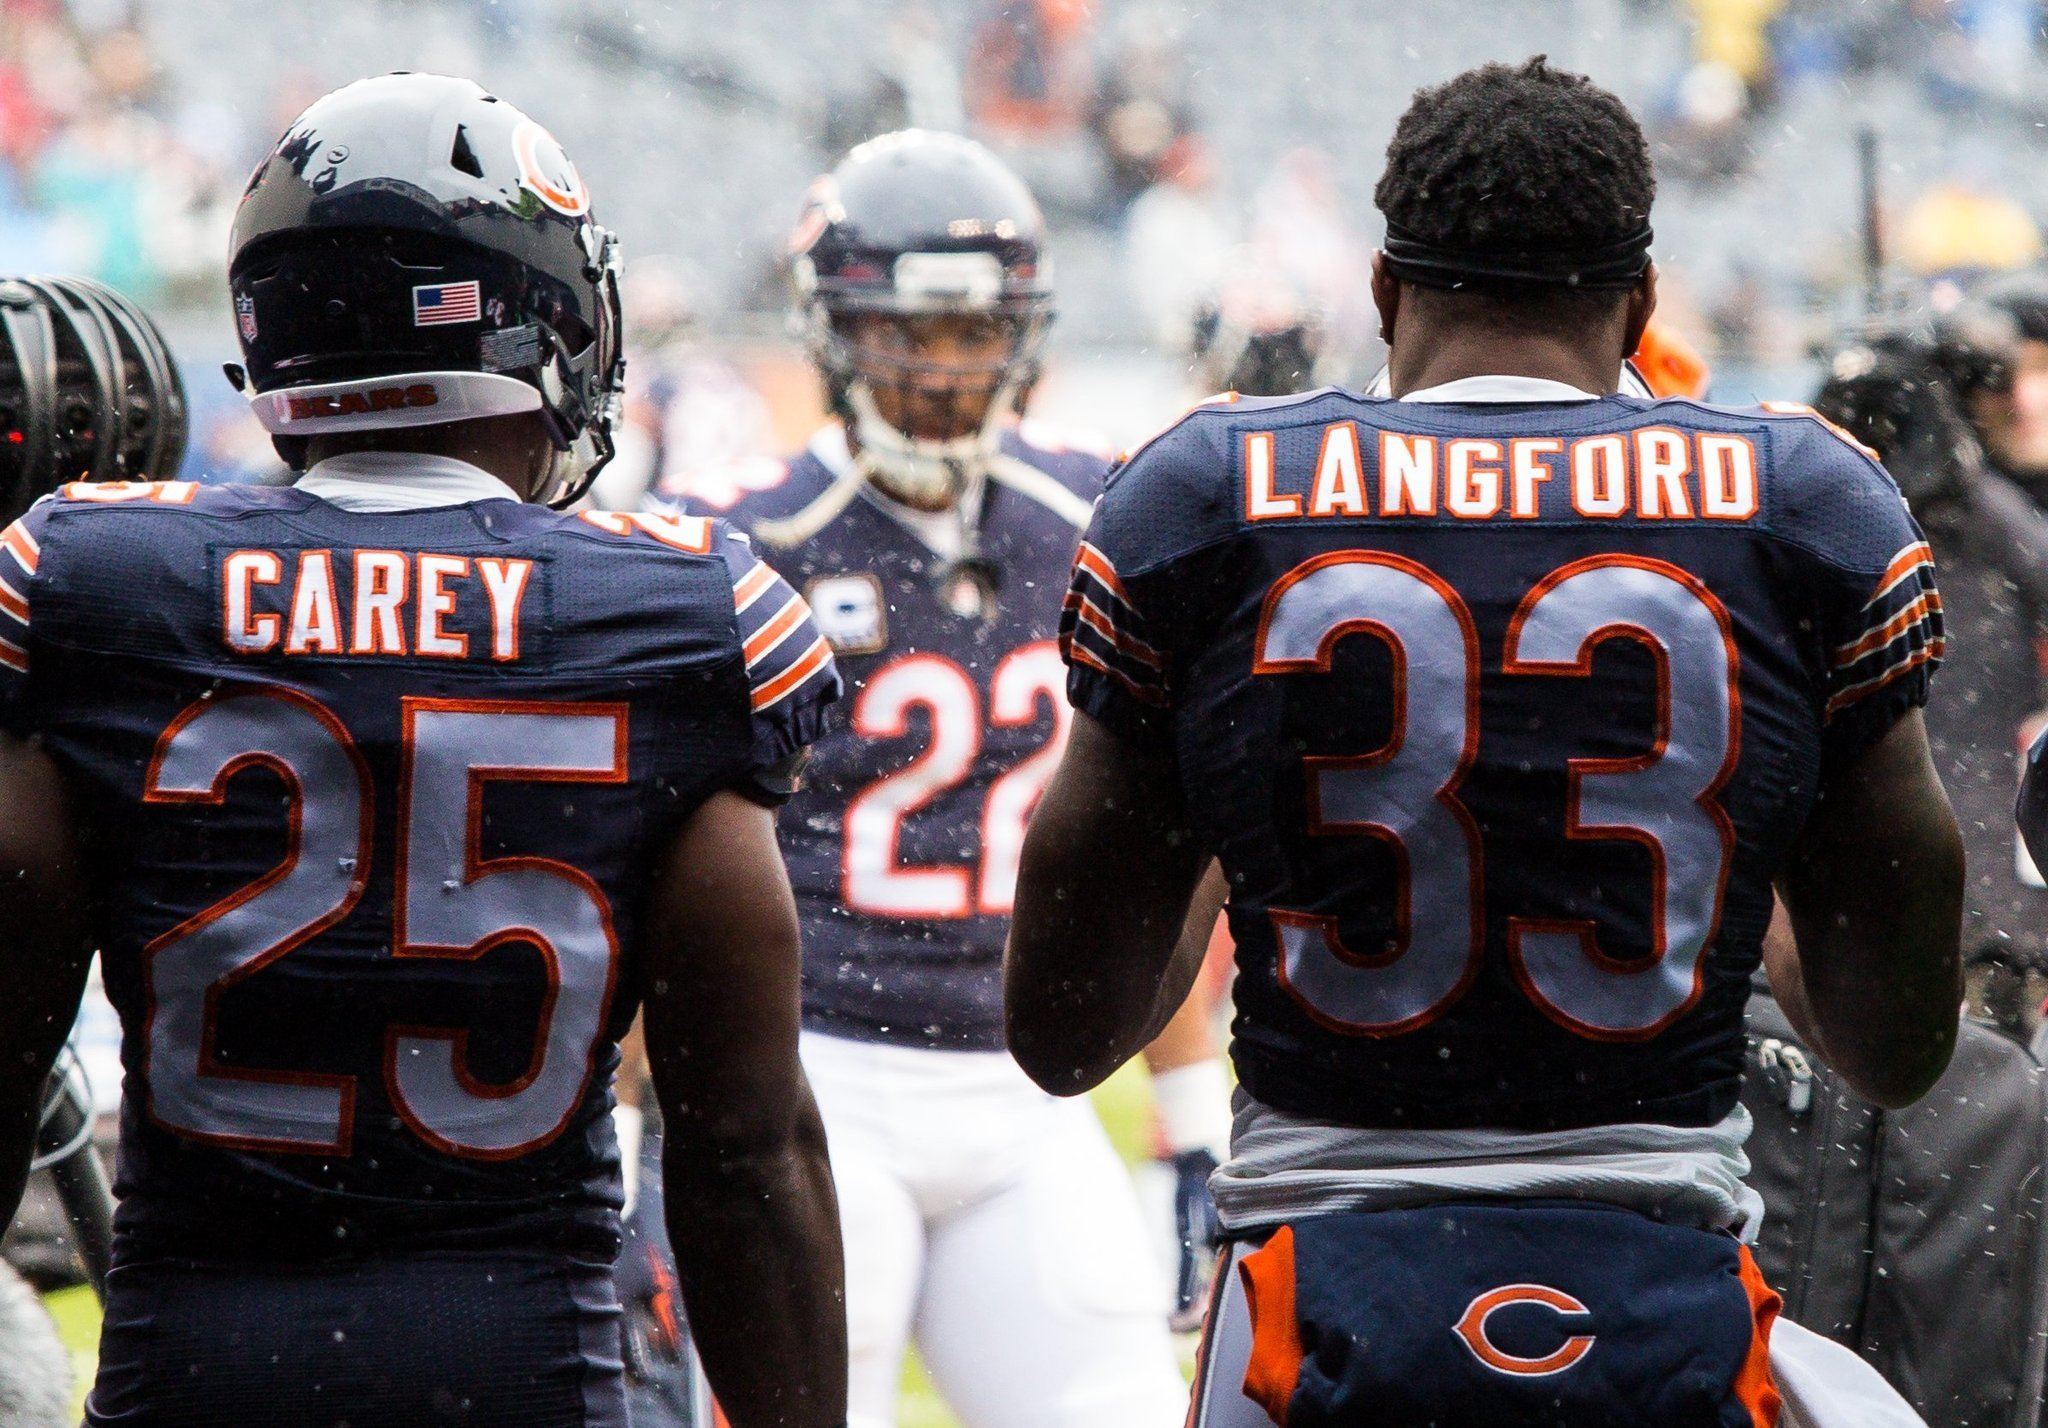 Ct-running-back-committee-jeremy-langford-spt-0522-20160520